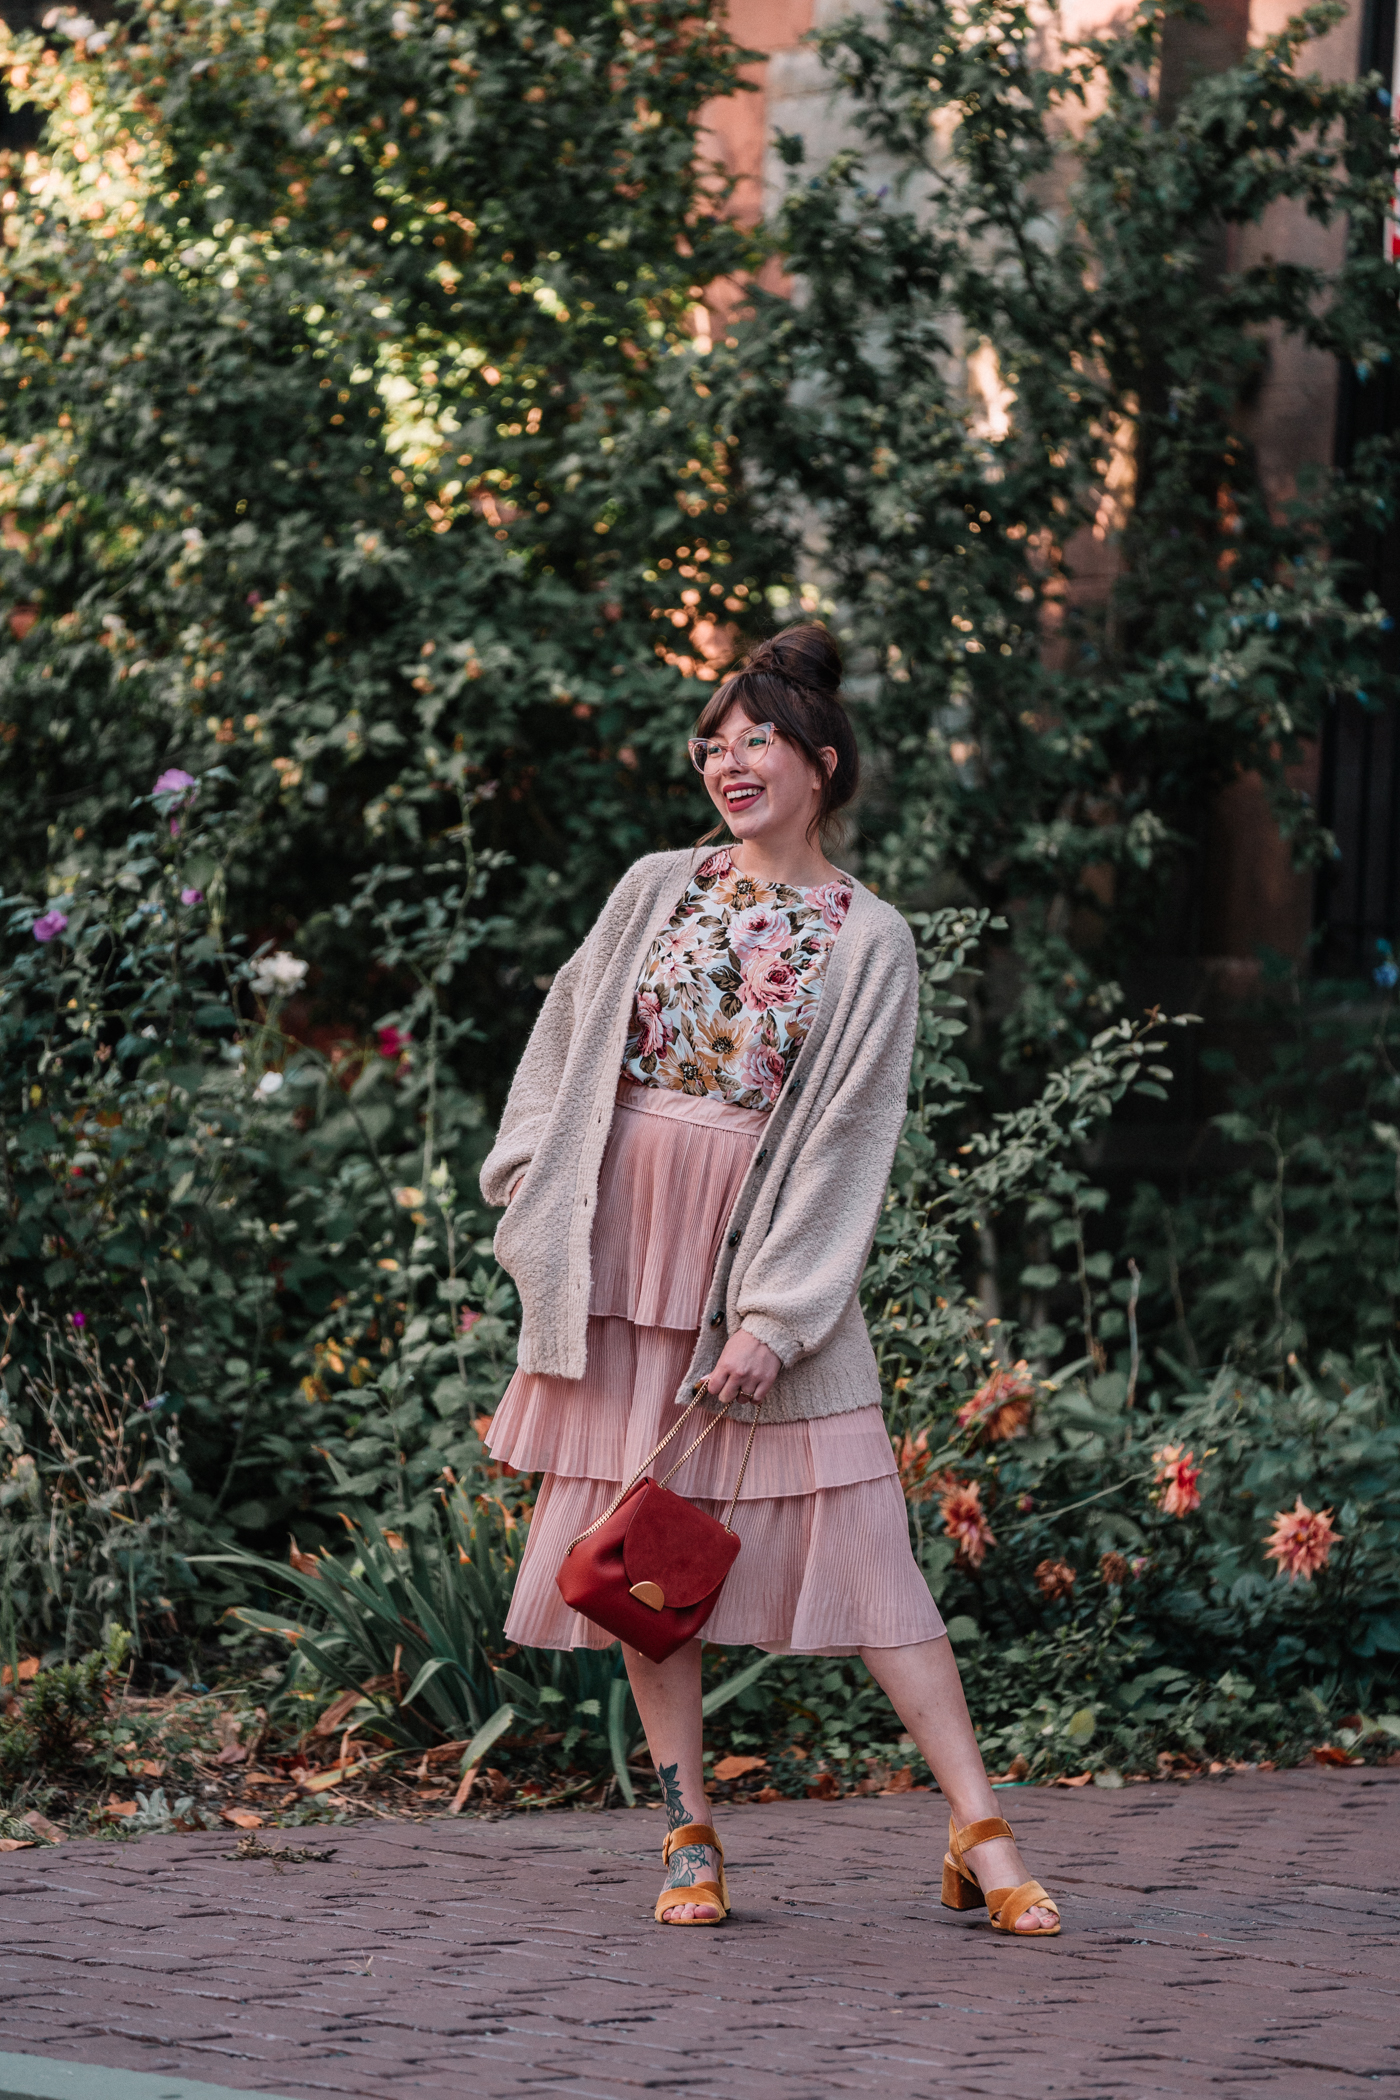 floral fall outfit with tiered blush skirt, cozy knit sweater, and velvet heels.